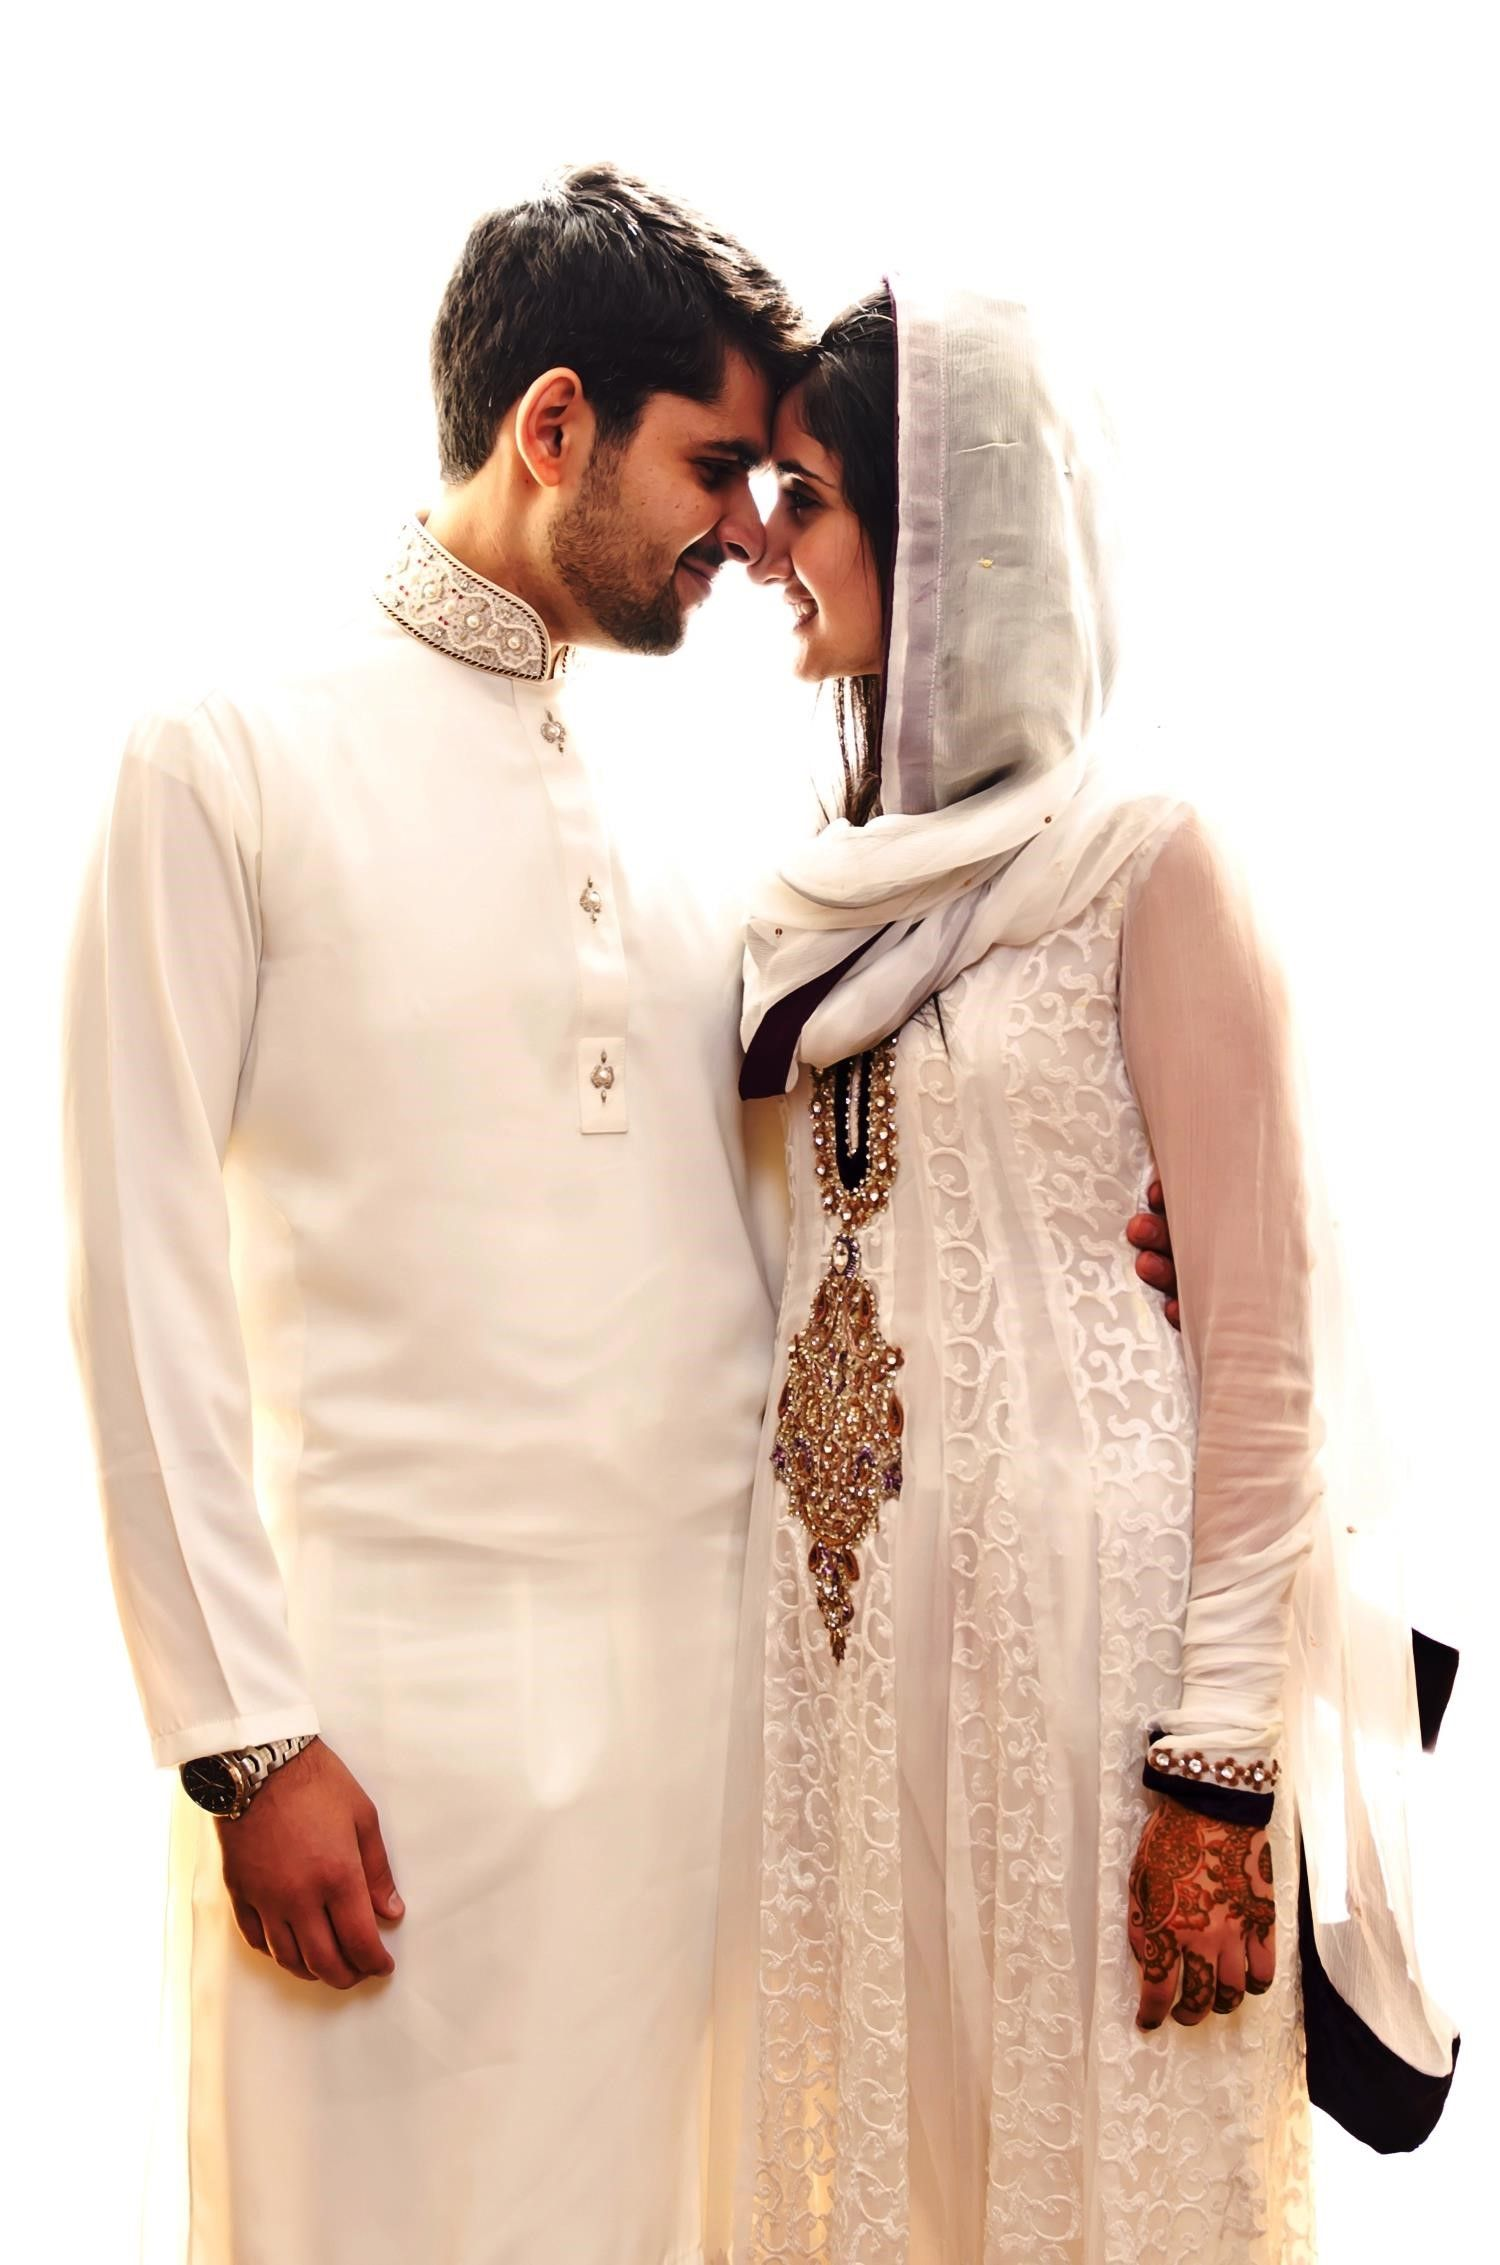 Indian muslim wedding dresses for men cute wedding for Indian muslim wedding dress